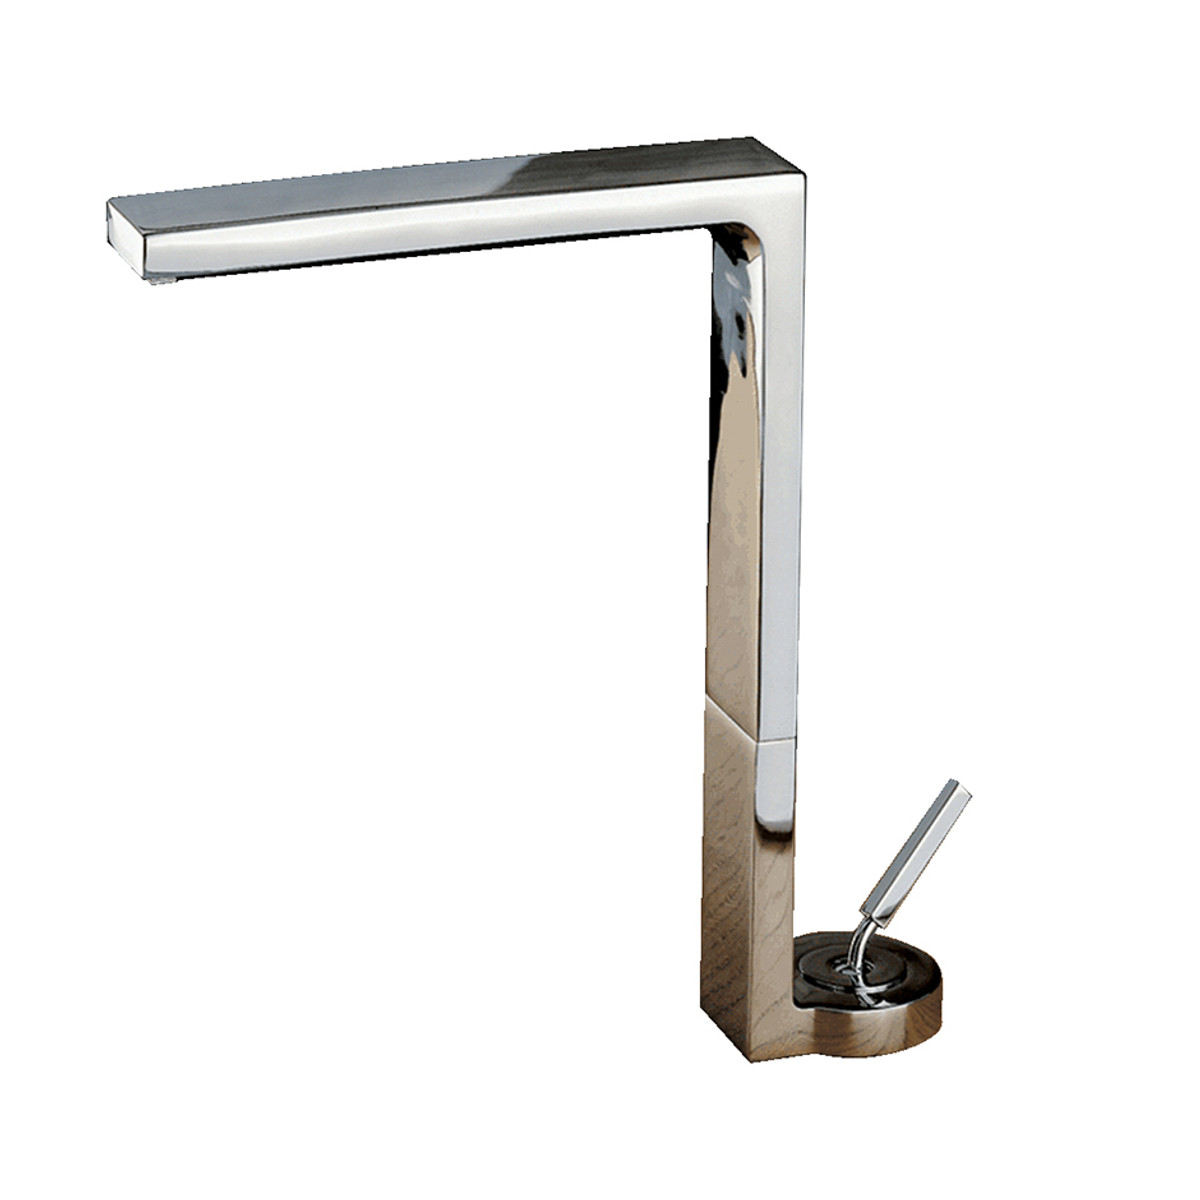 W1026 Waterblade Faucet